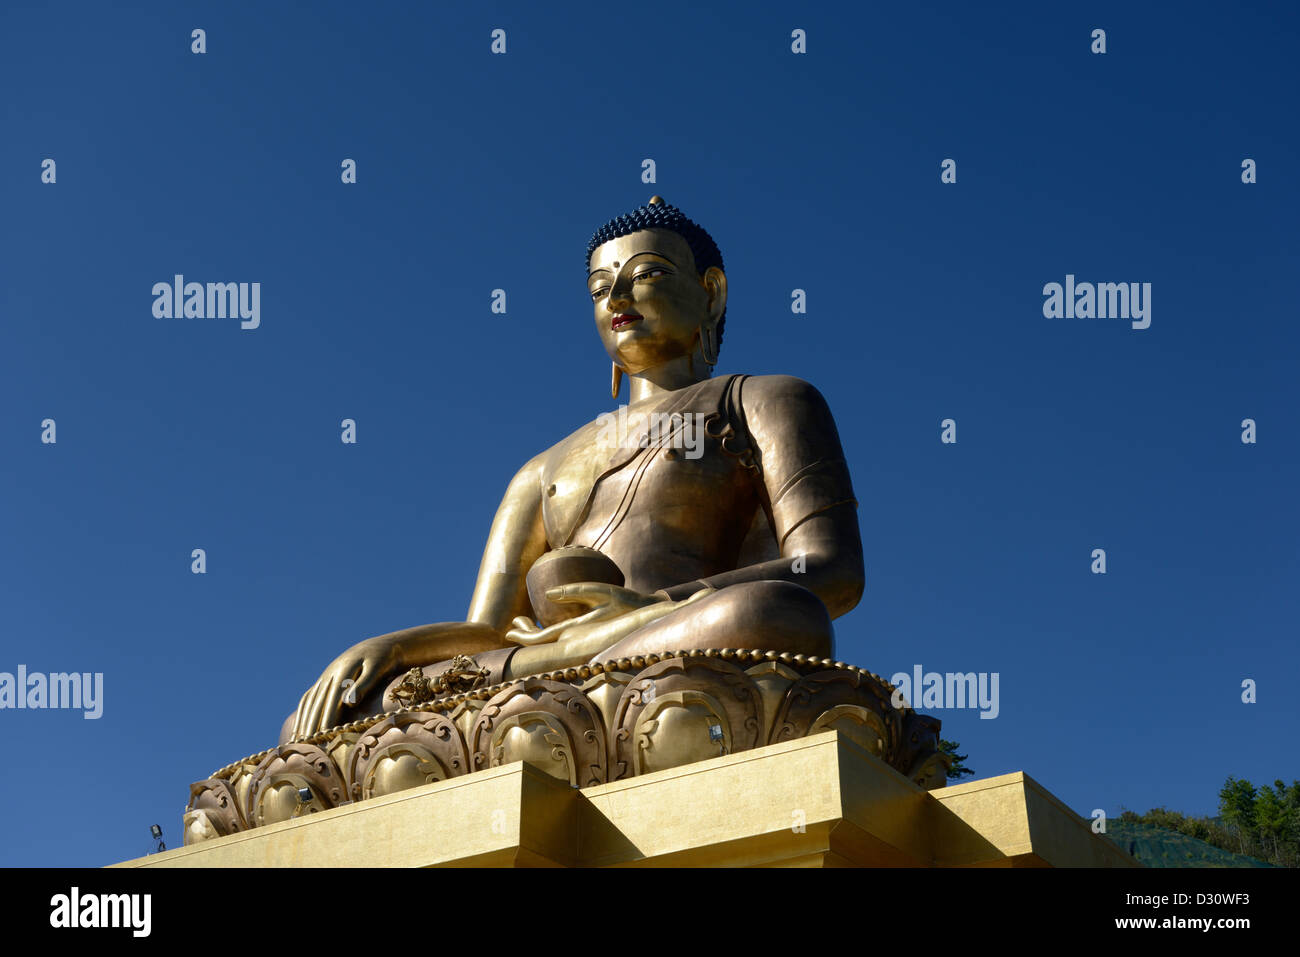 Giant golden Buddha statue,overlooks the valley with the capital Thimphu below,high vantage point,50m tall,Bhutan,36MPX,HI - Stock Image